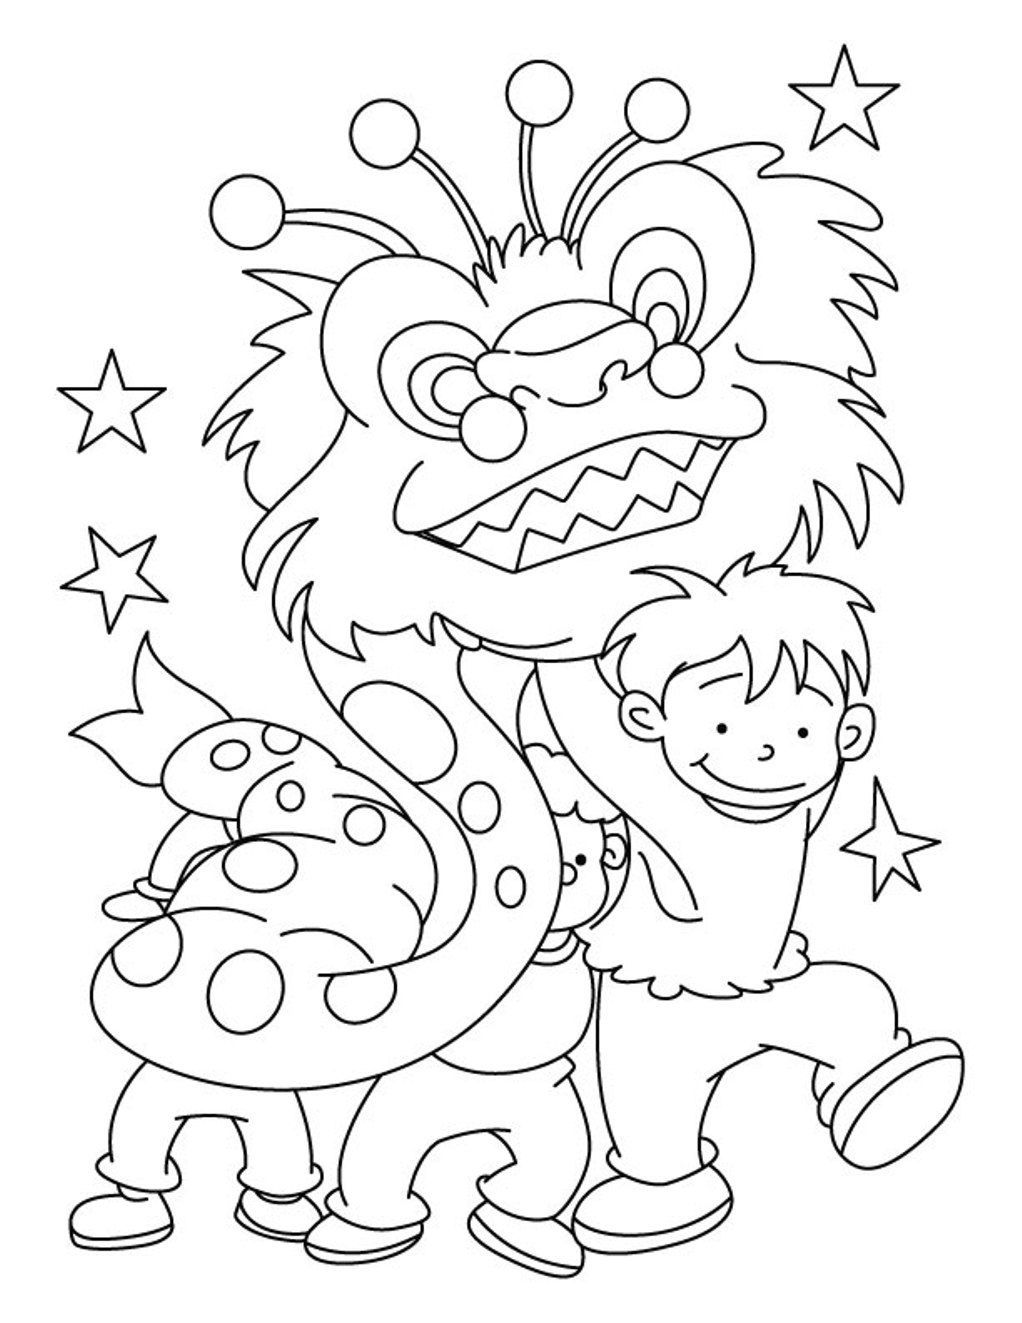 Chinese New Year 2020 Coloring Pages And Activities Year Of The Rat New Year Coloring Pages Chinese New Year Zodiac Chinese New Year Activities